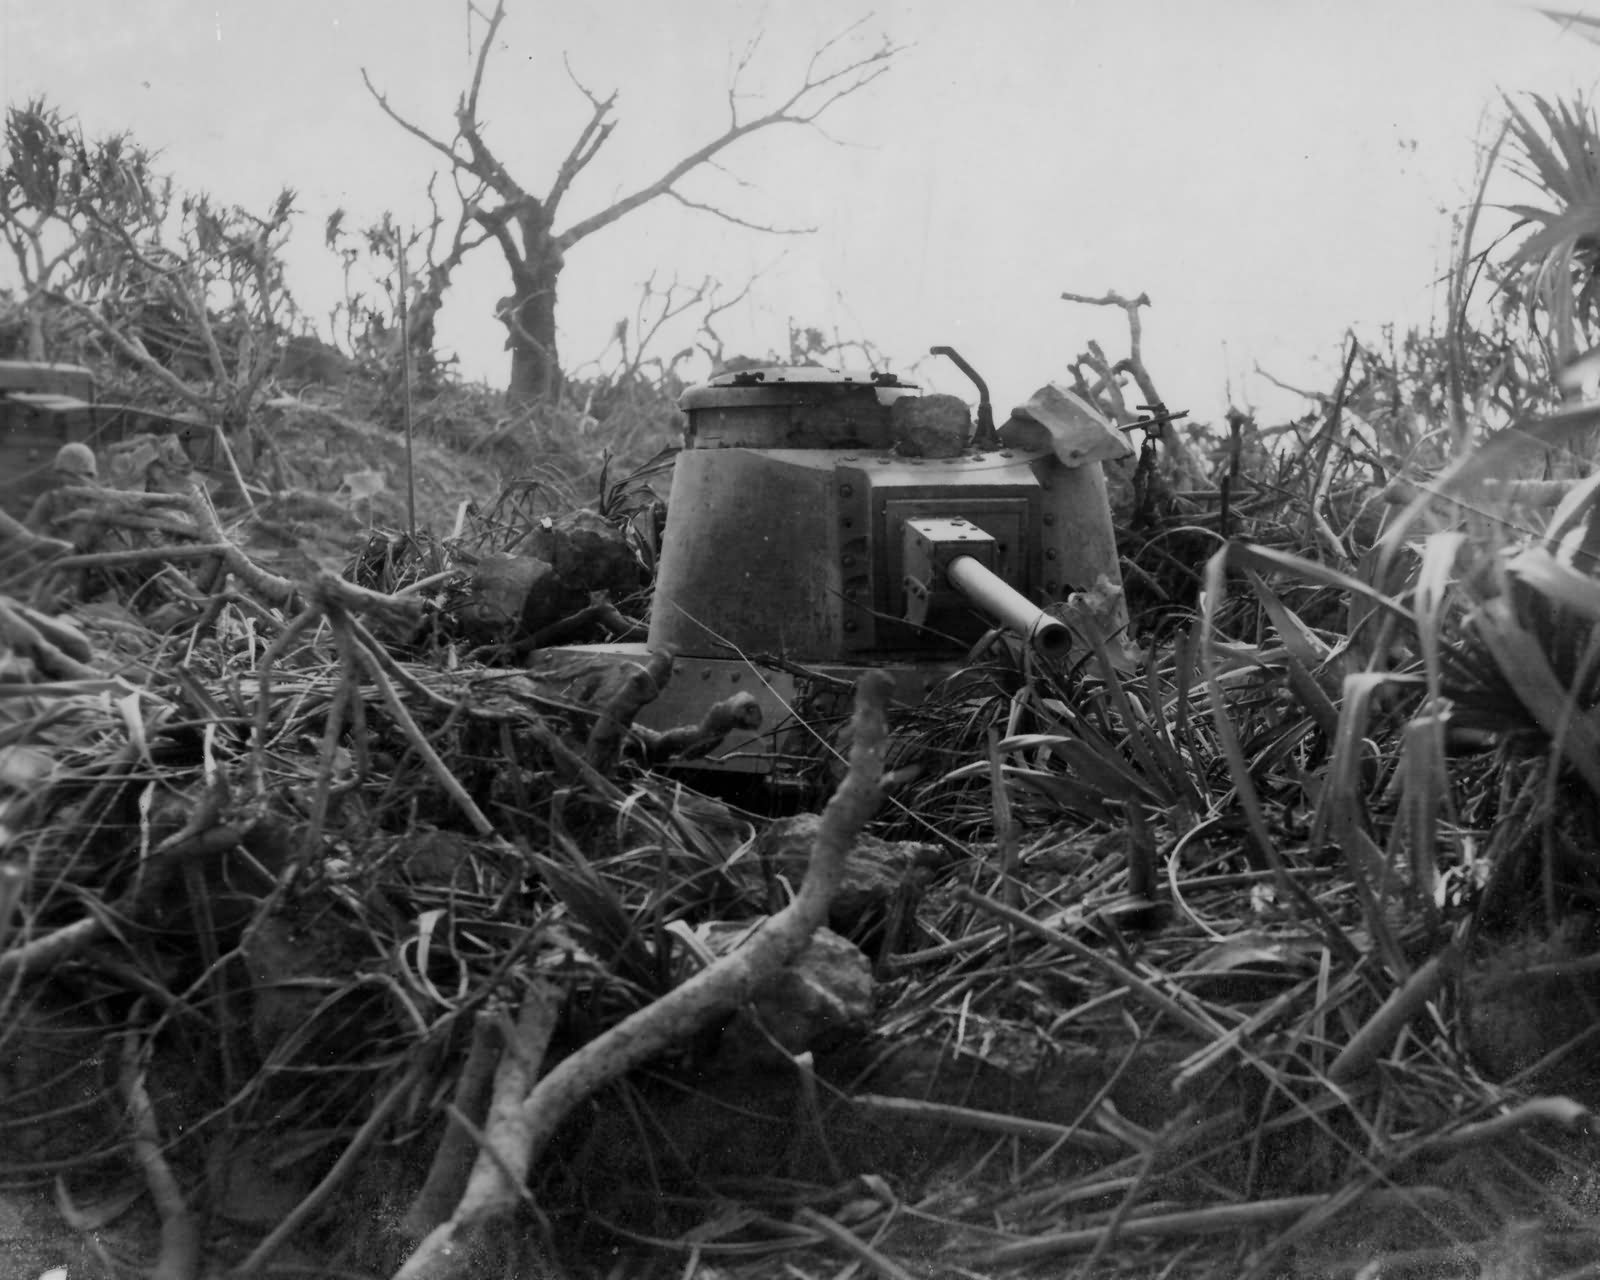 Japanese 26th Tank Regiment Type 97 Shinhoto Chi Ha on Iwo Jima 1945